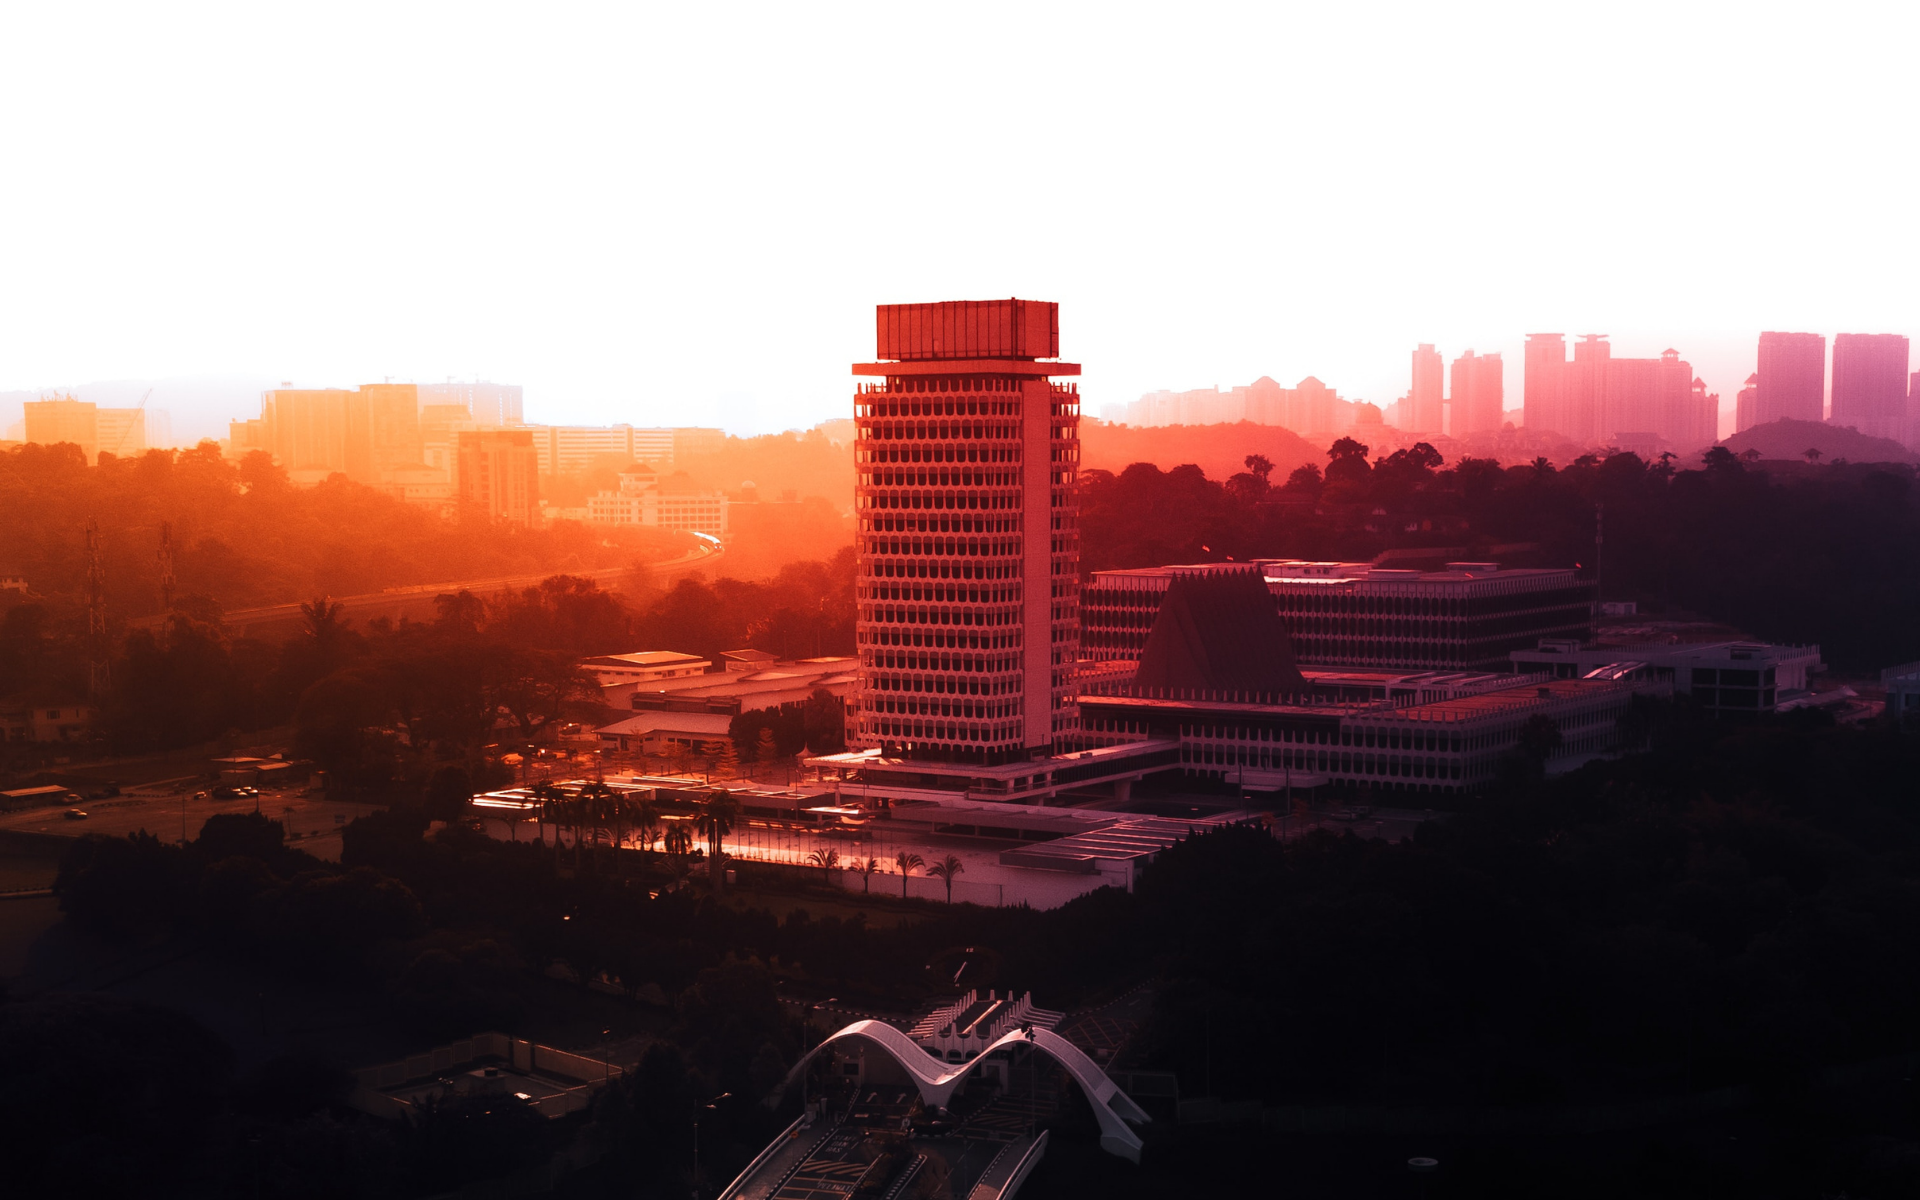 Malaysia's iconic Parliament Building